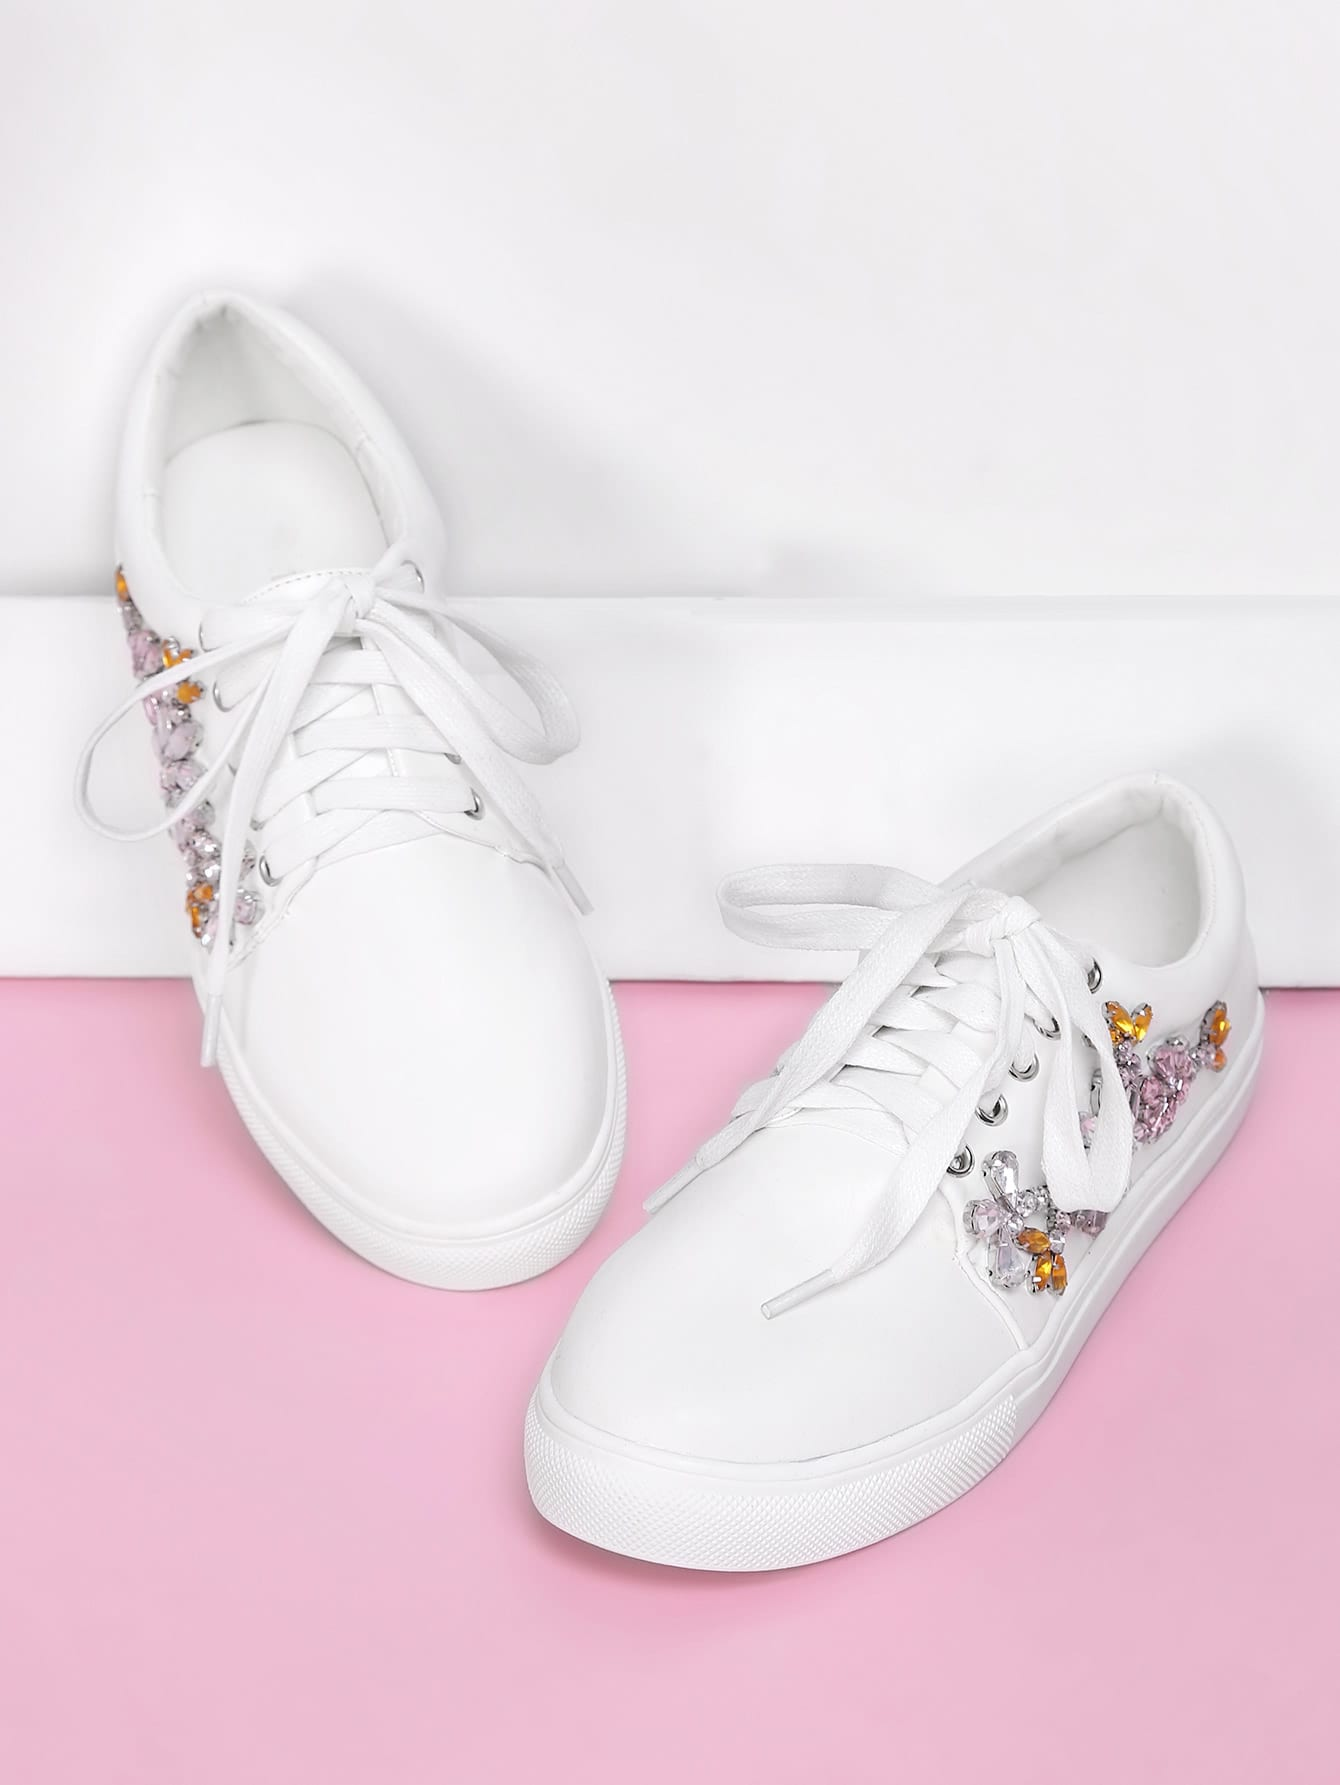 Rhinestone Flower Decorated Lace Up Sneakers st decorated up